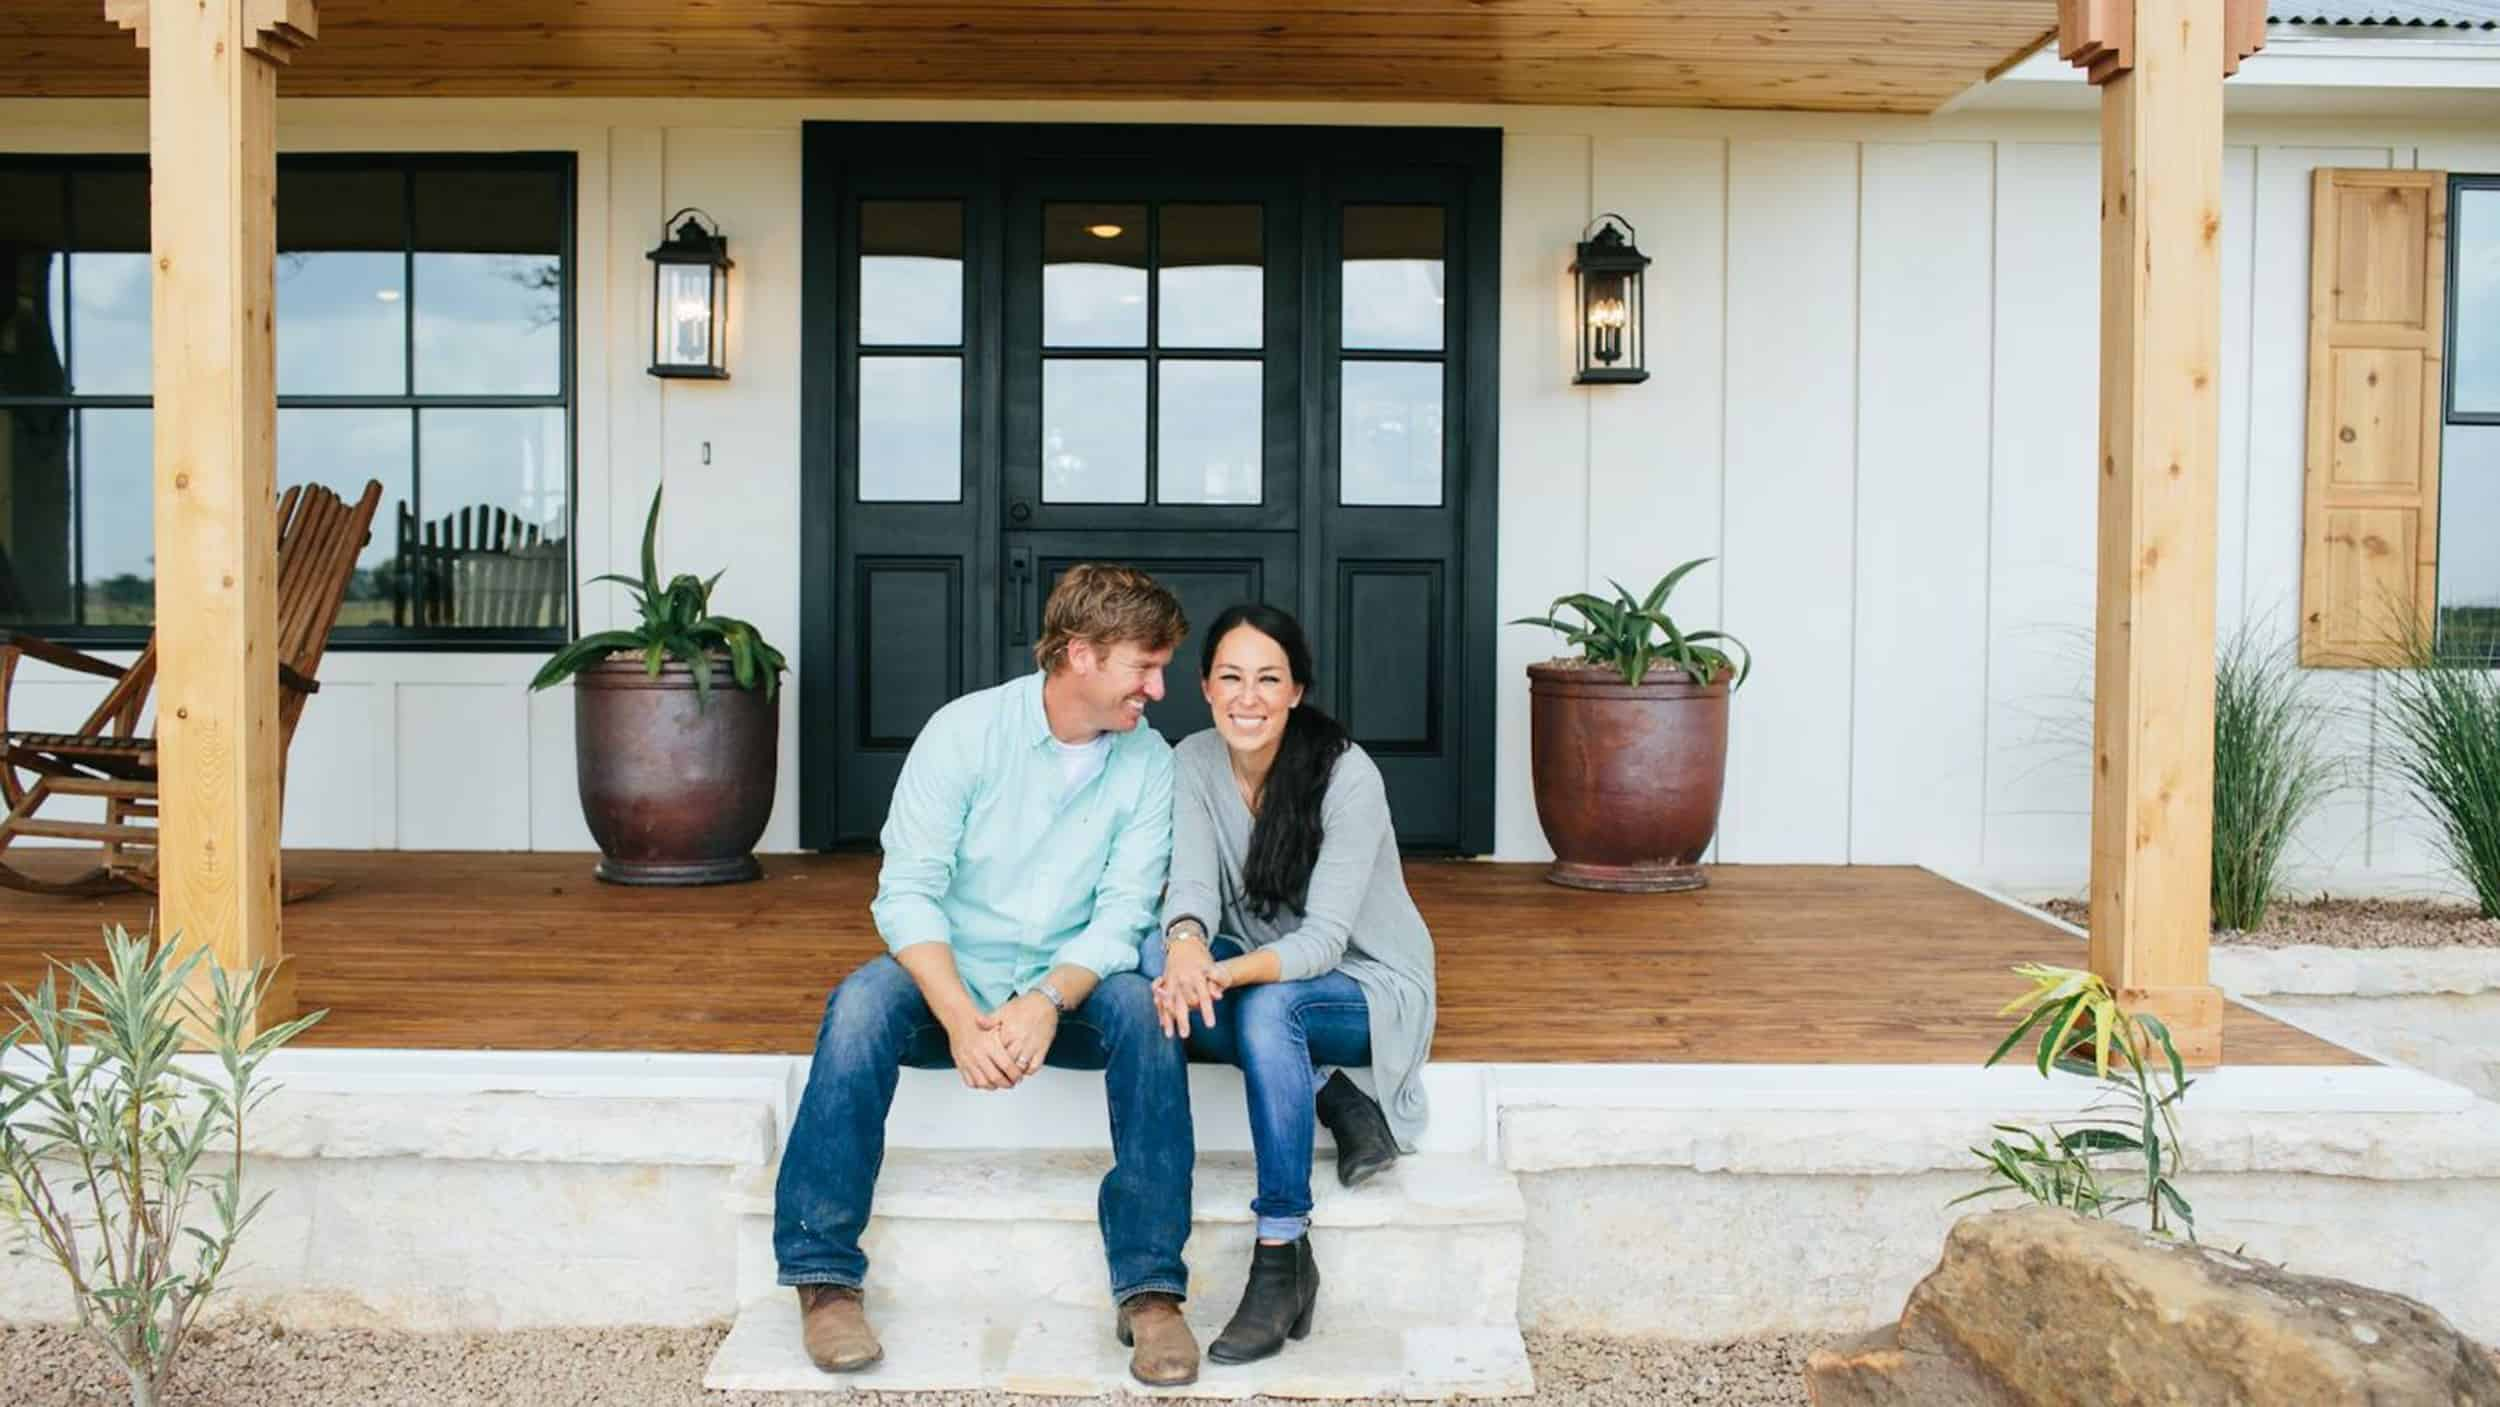 39 fixer upper 39 stars chip and joanna gaines get spinoff tv show - Show the home photos ...